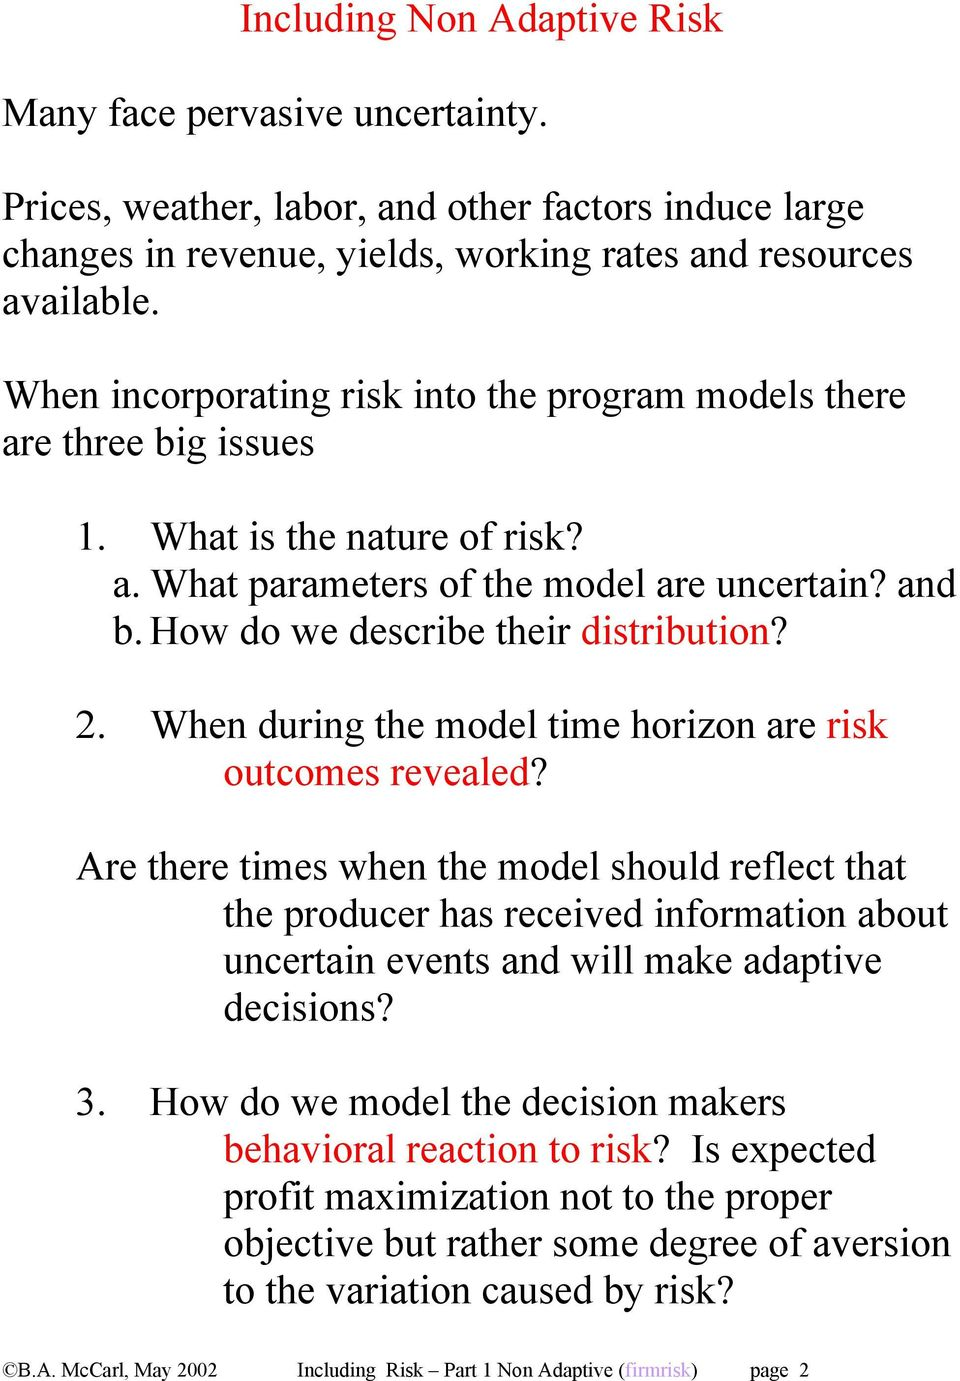 . When during the model time horizon are ris outcomes revealed?